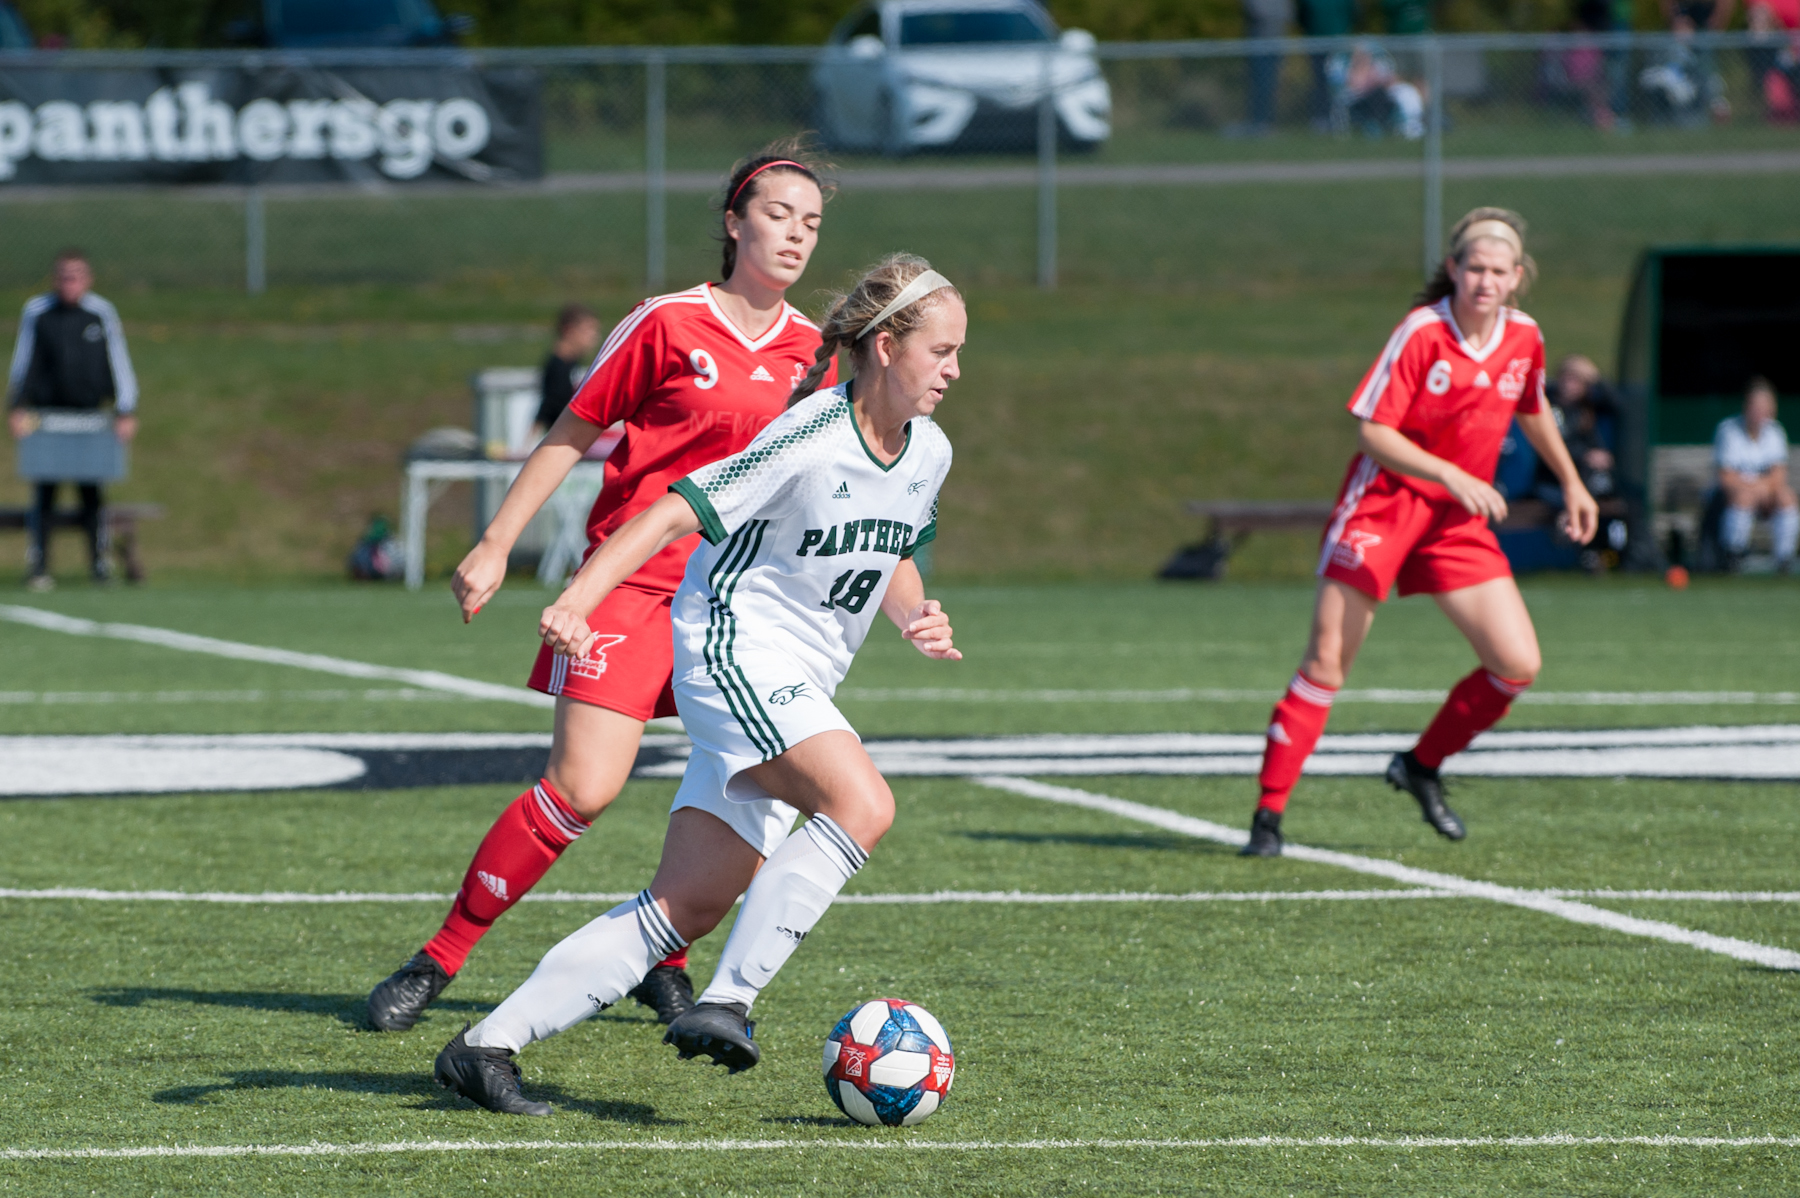 Sea-Hawks' offence soars again in 3-1 win over UPEI